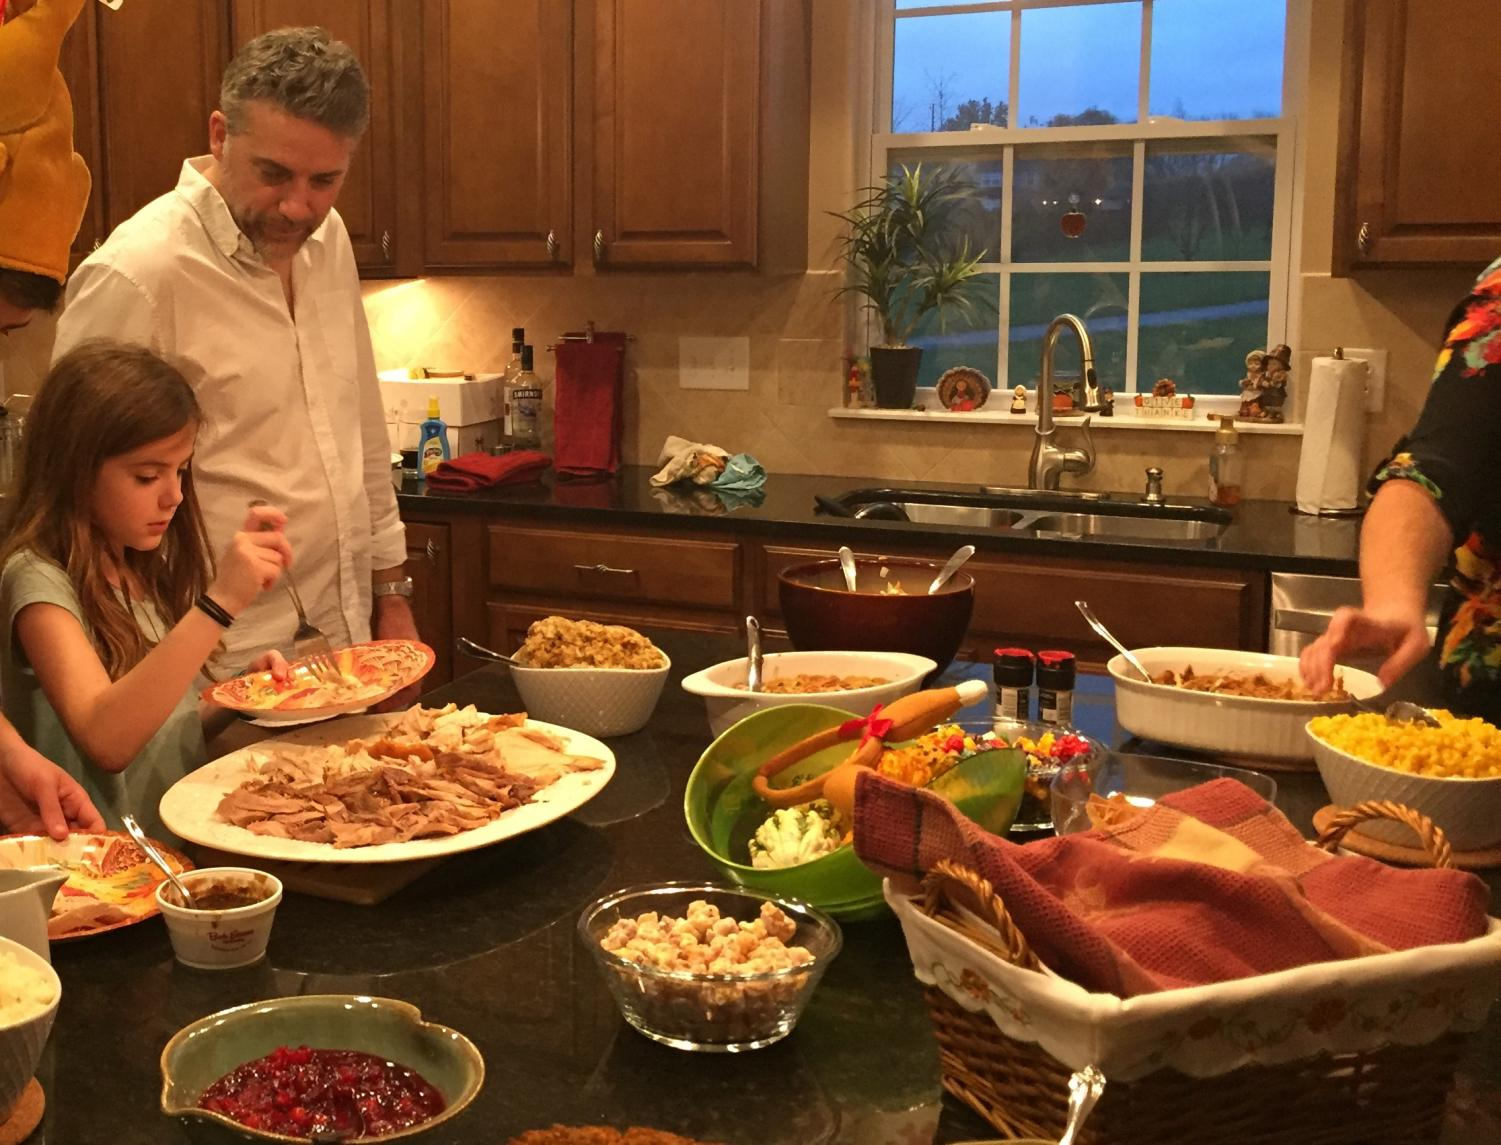 """In 2016, freshman Ava Beckman and her father, David Beckman, collect food from the kitchen counter on Thanksgiving. Beckman said her family normally celebrates Thanksgiving with many family members, but this year, due to the coronavirus, will most likely only celebrate Thanksgiving with immediate family. Beckman said, """"I would say just go ahead and make those changes to be safe. It's better to be safe than sorry. I'd say you would rather have a smaller Thanksgiving celebration and not have anybody get sick, instead of having a big celebration and then half those people have COVID and it's a very dangerous virus, somebody could be in the hospital, somebody could pass away."""""""